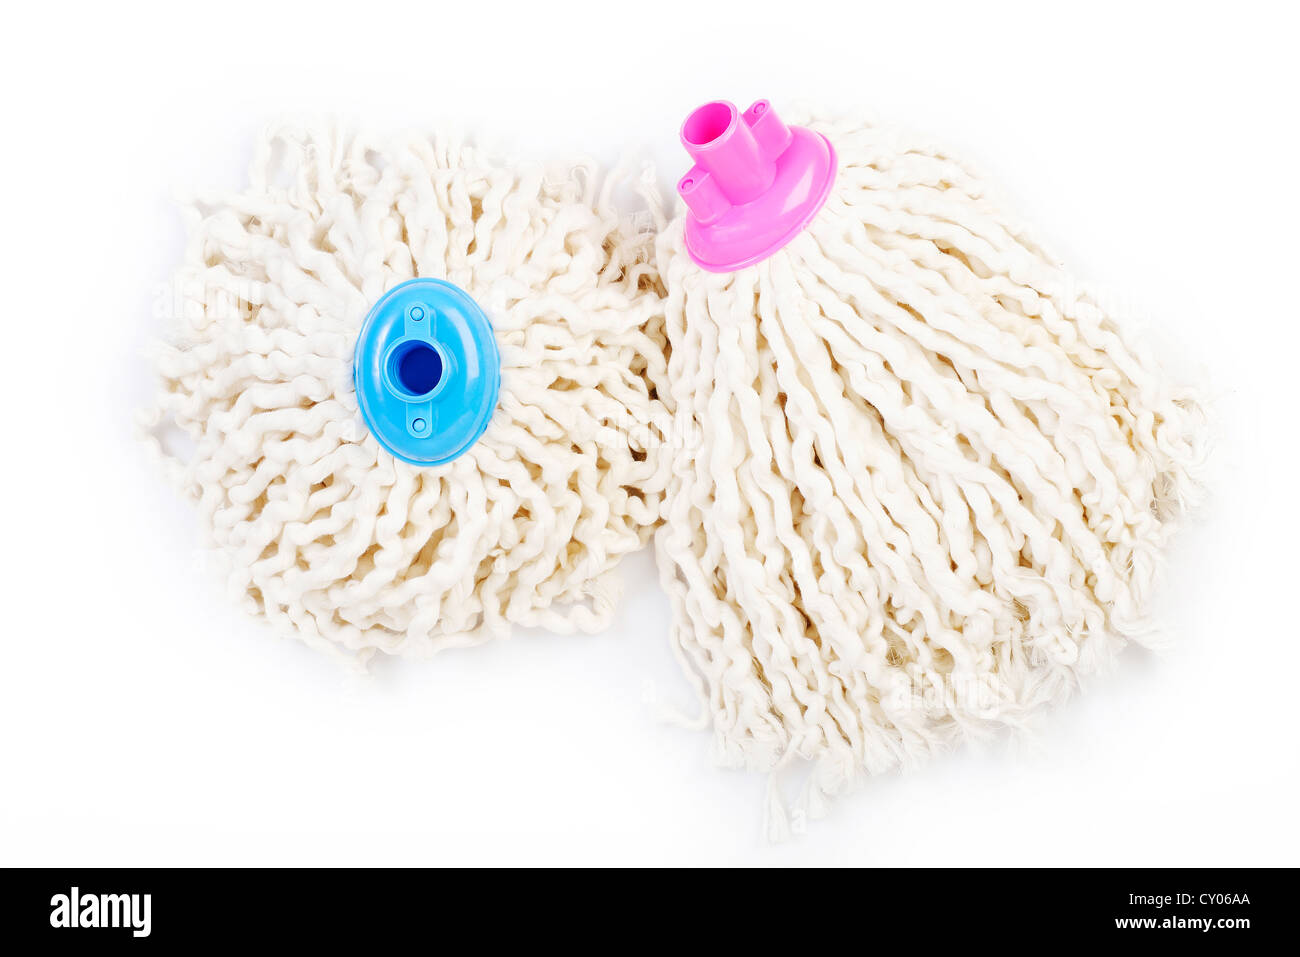 Mop of rope on white background - Stock Image